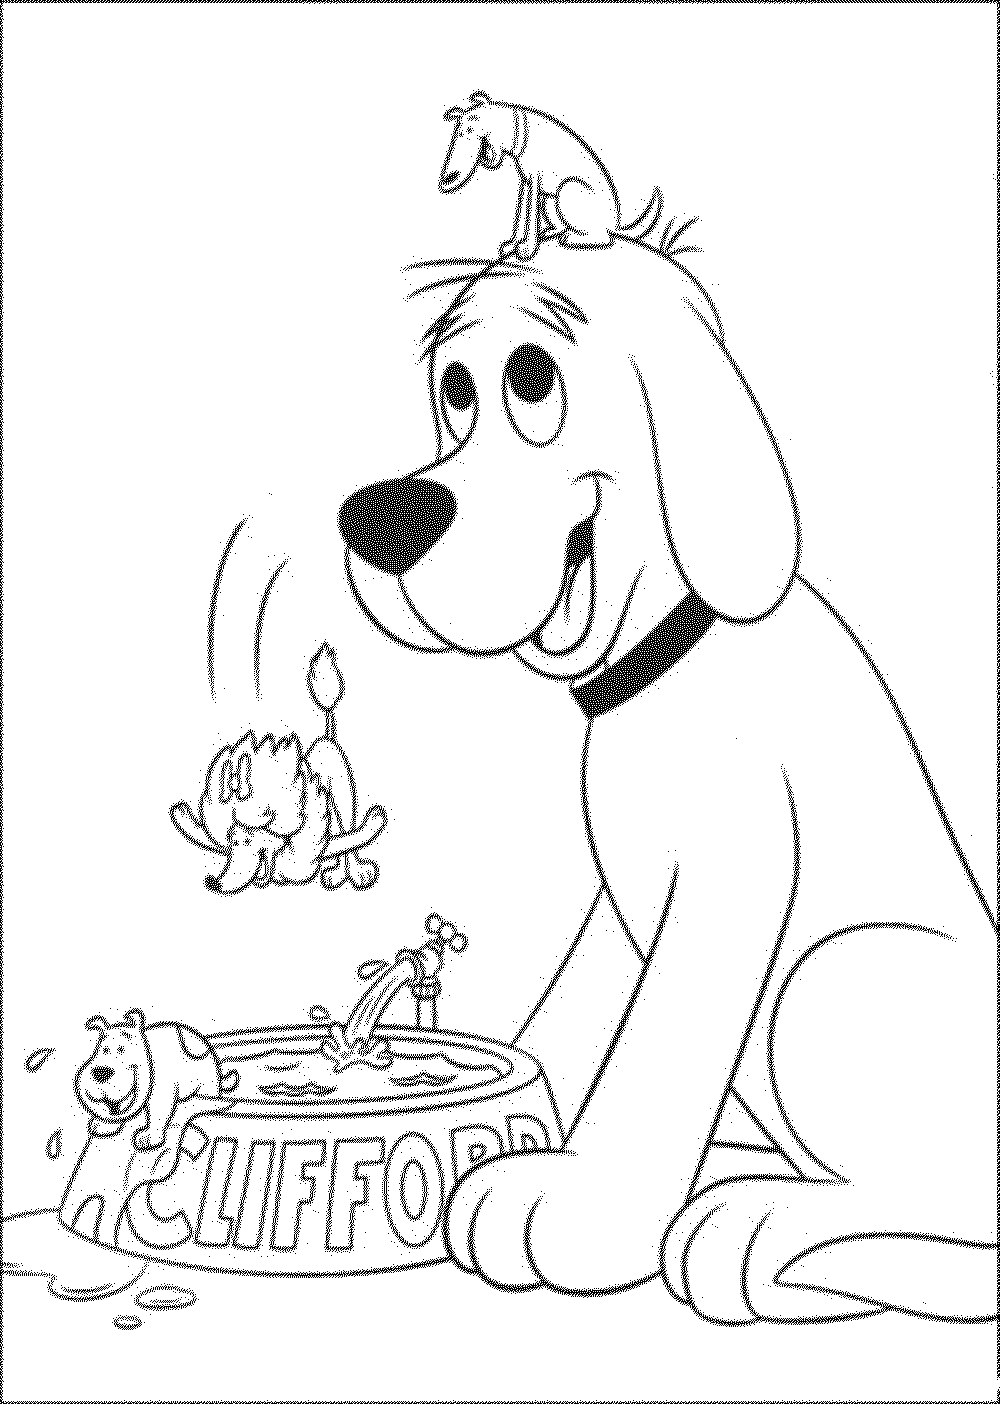 Coloring Pages Clifford The Big Red Dog Coloring Pages Printable clifford coloring pages to print az biscuit the dog printable kids colouring pages